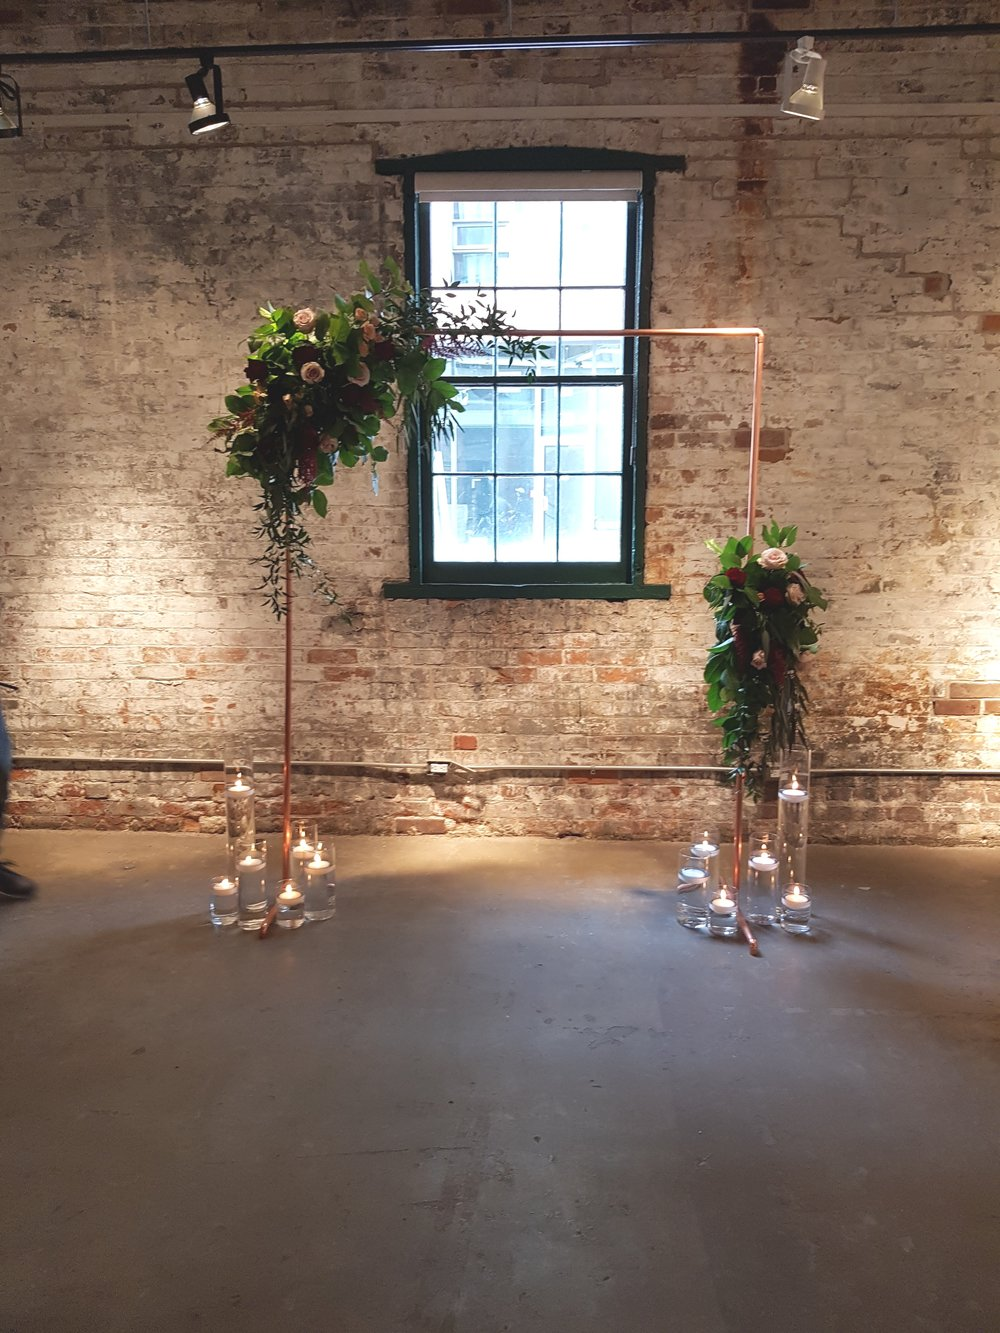 Copper Frame - $100   6.5' H x 5' W  (Flowers and decor not included)